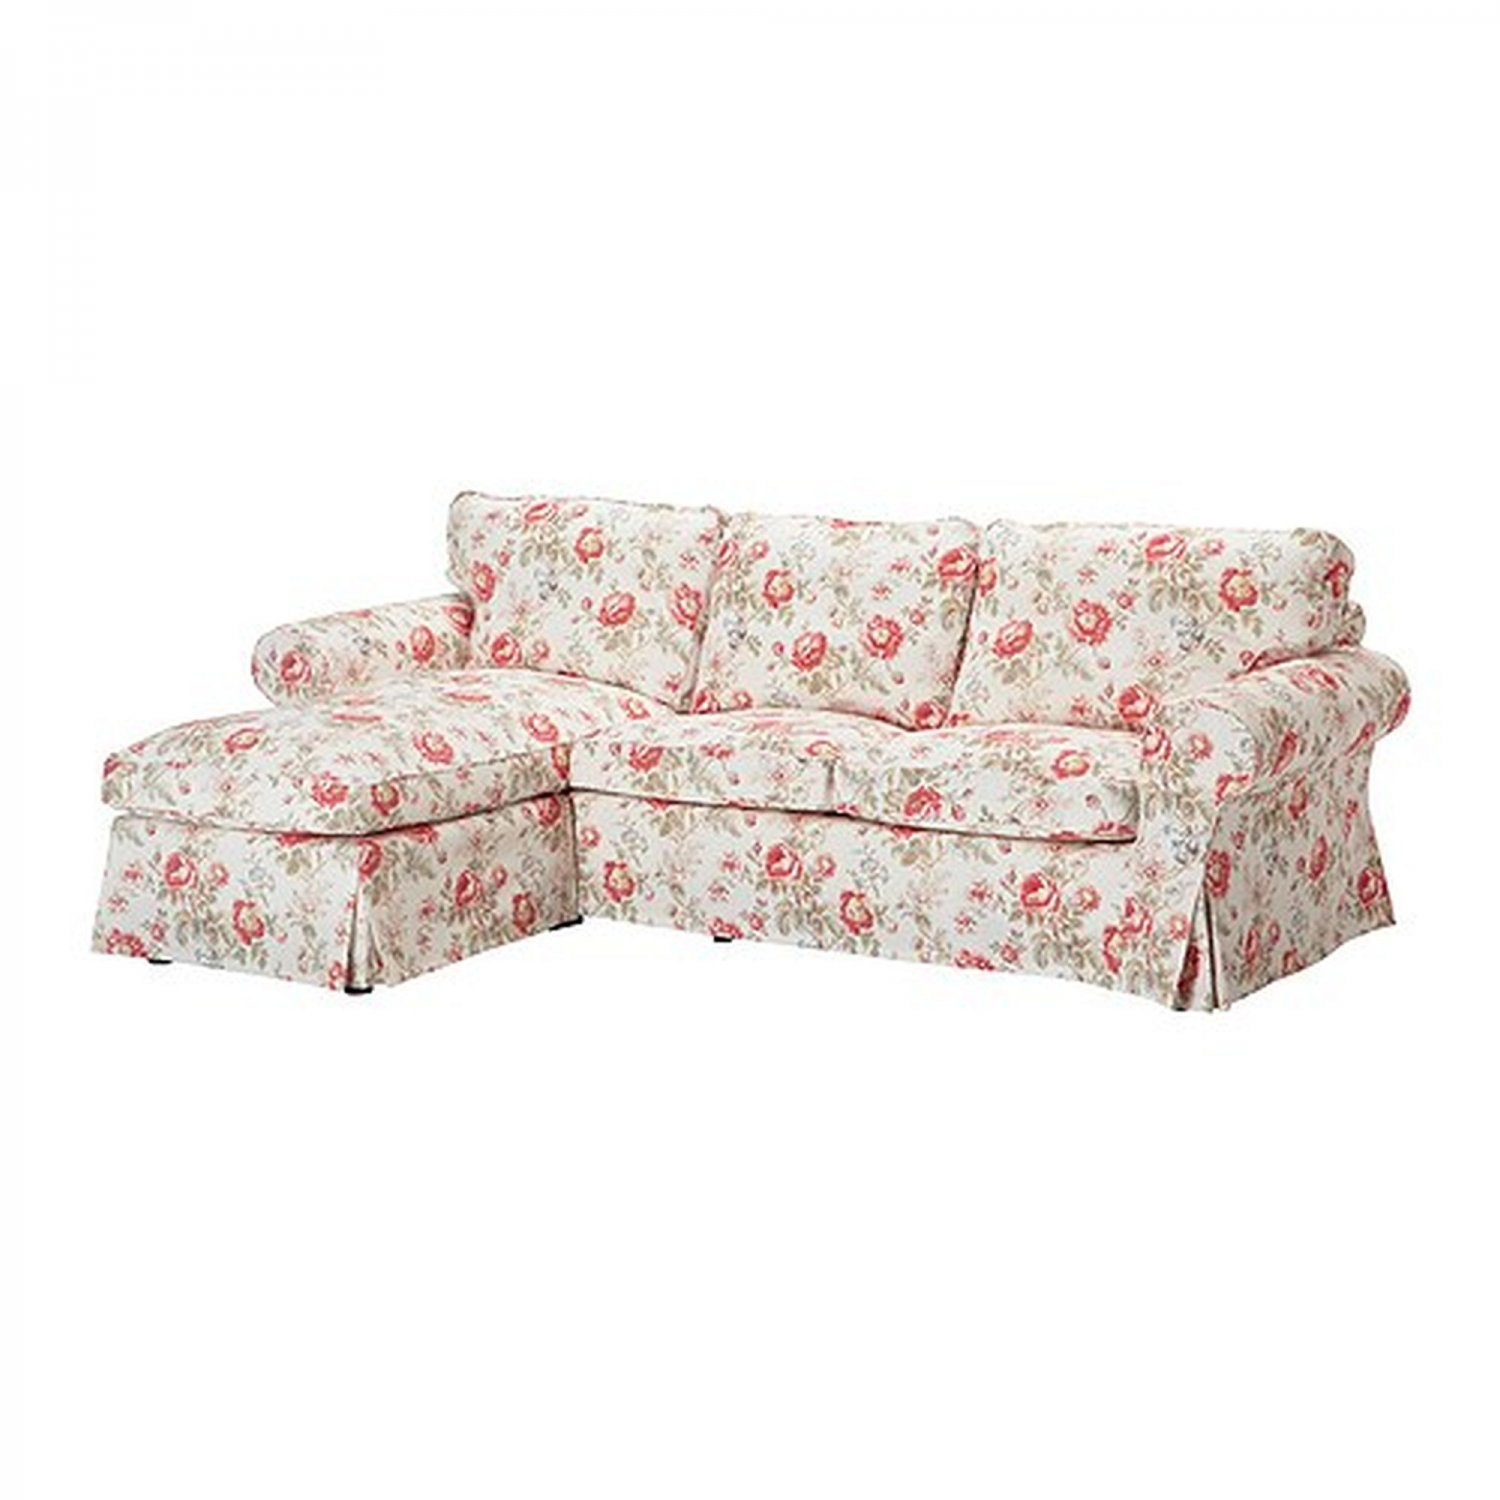 ikea ektorp 2 seat loveseat sofa with chaise cover slipcover byvik multi floral roses peonies